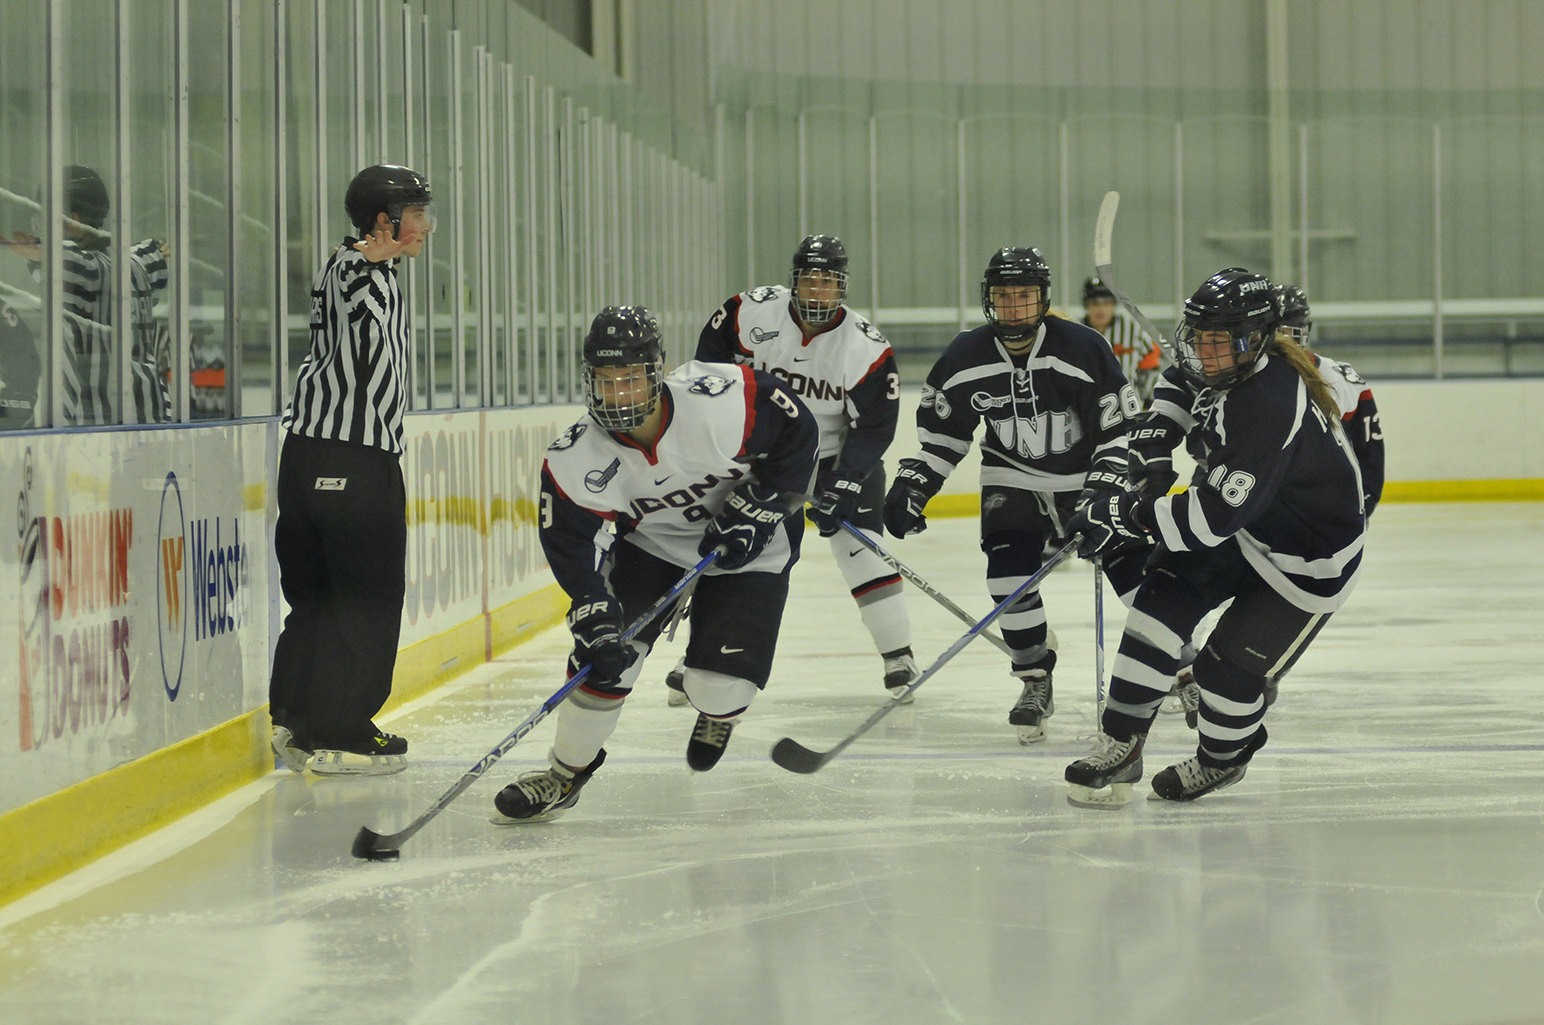 UConn junior defender Jessica Stott handles the puck during the Huskies' game against New Hampshire at the Freitas Ice Forum in Storrs, Connecticut on Sunday, Nov. 8, 2015. (Jason Jiang/The Daily Campus)